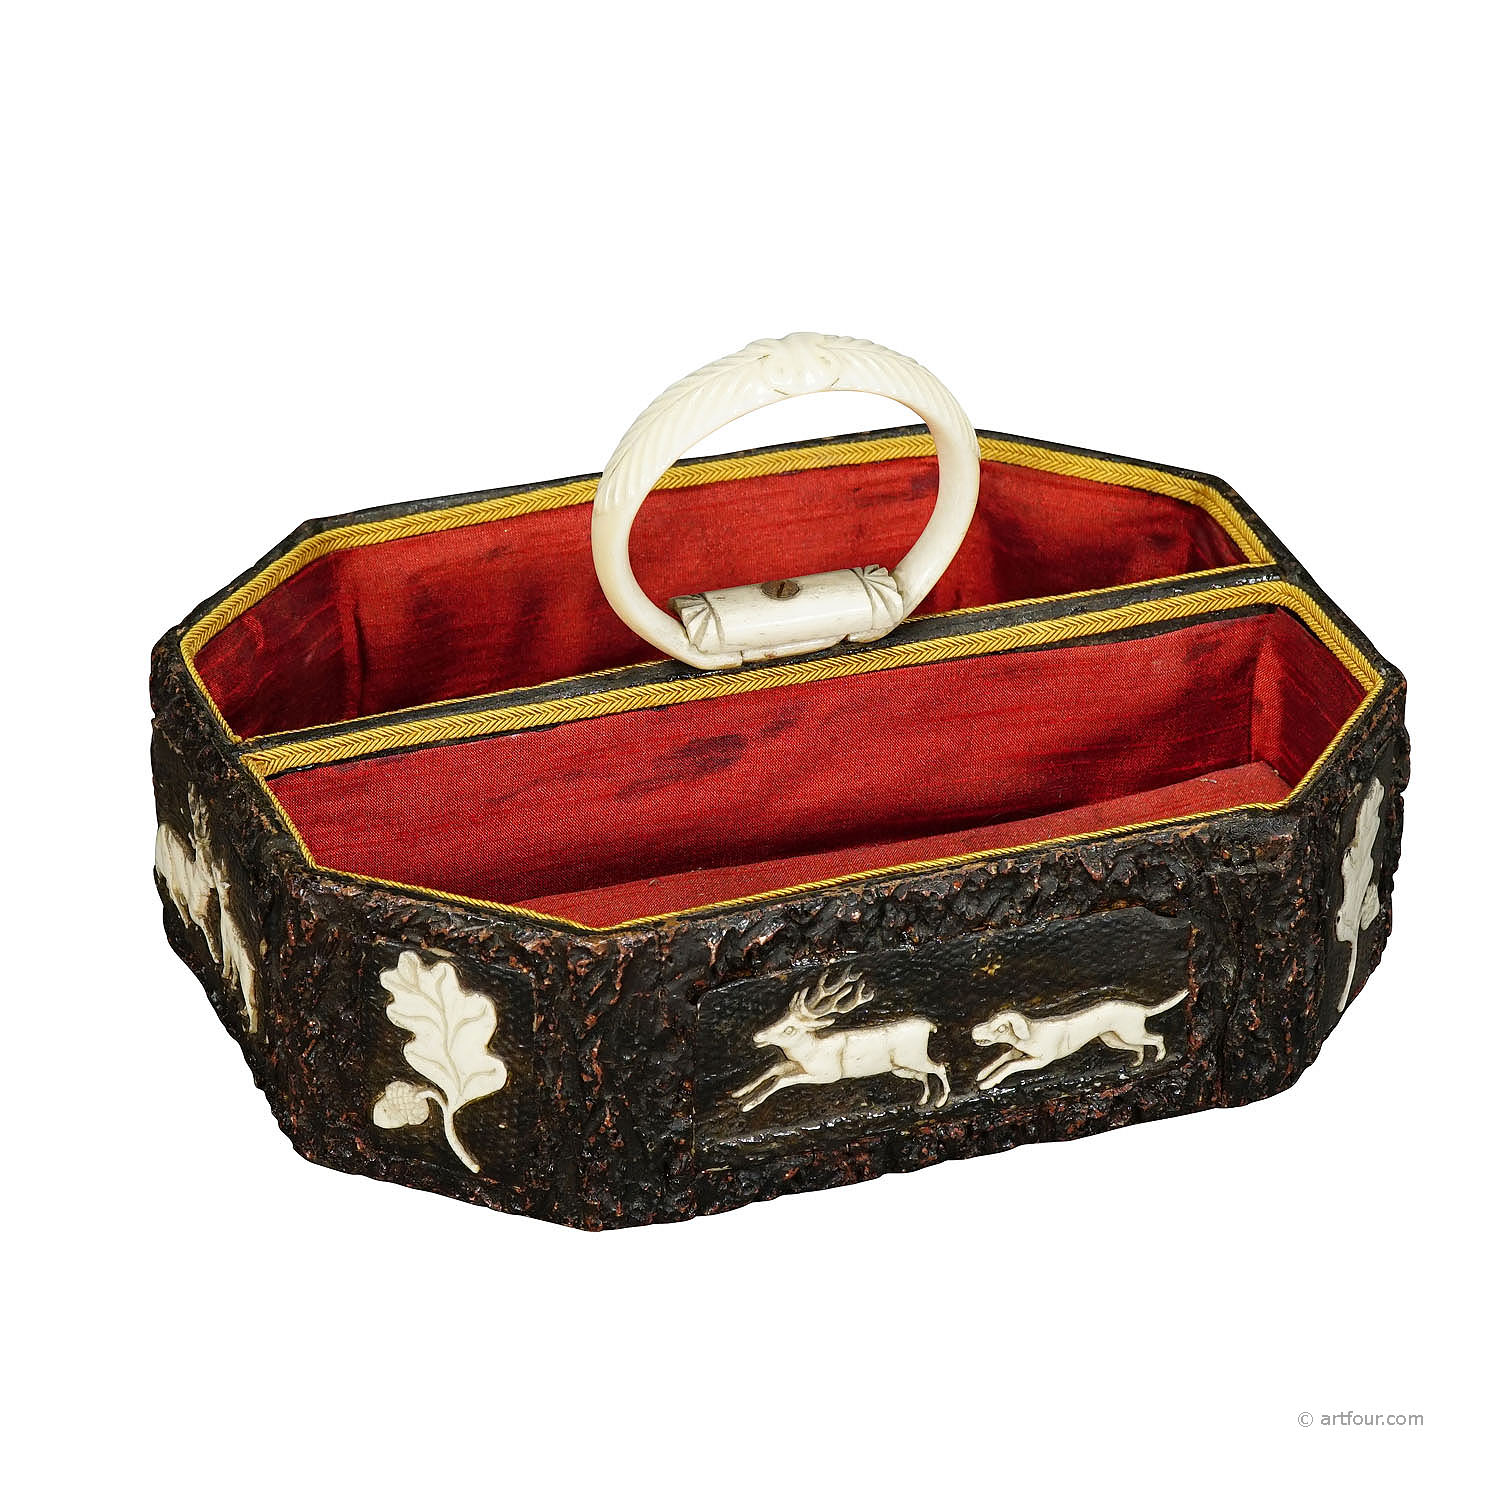 antique black forest basket with carved horn plaques, ca. 1860